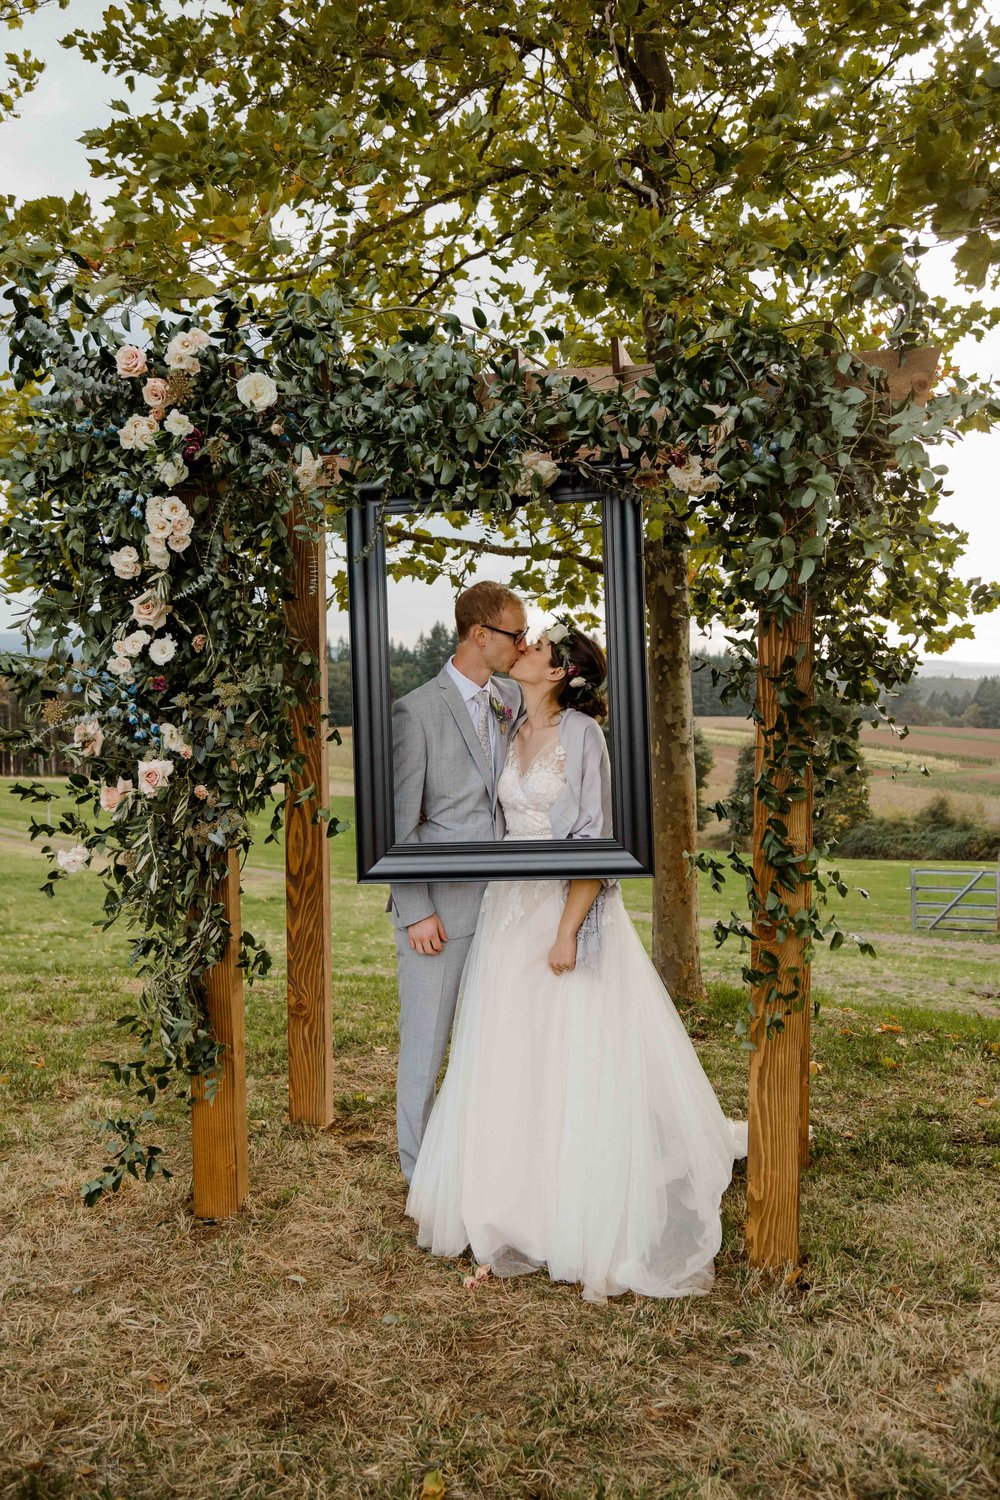 vineyard wedding summer fall oregon corgi rustic wedding-84.jpg